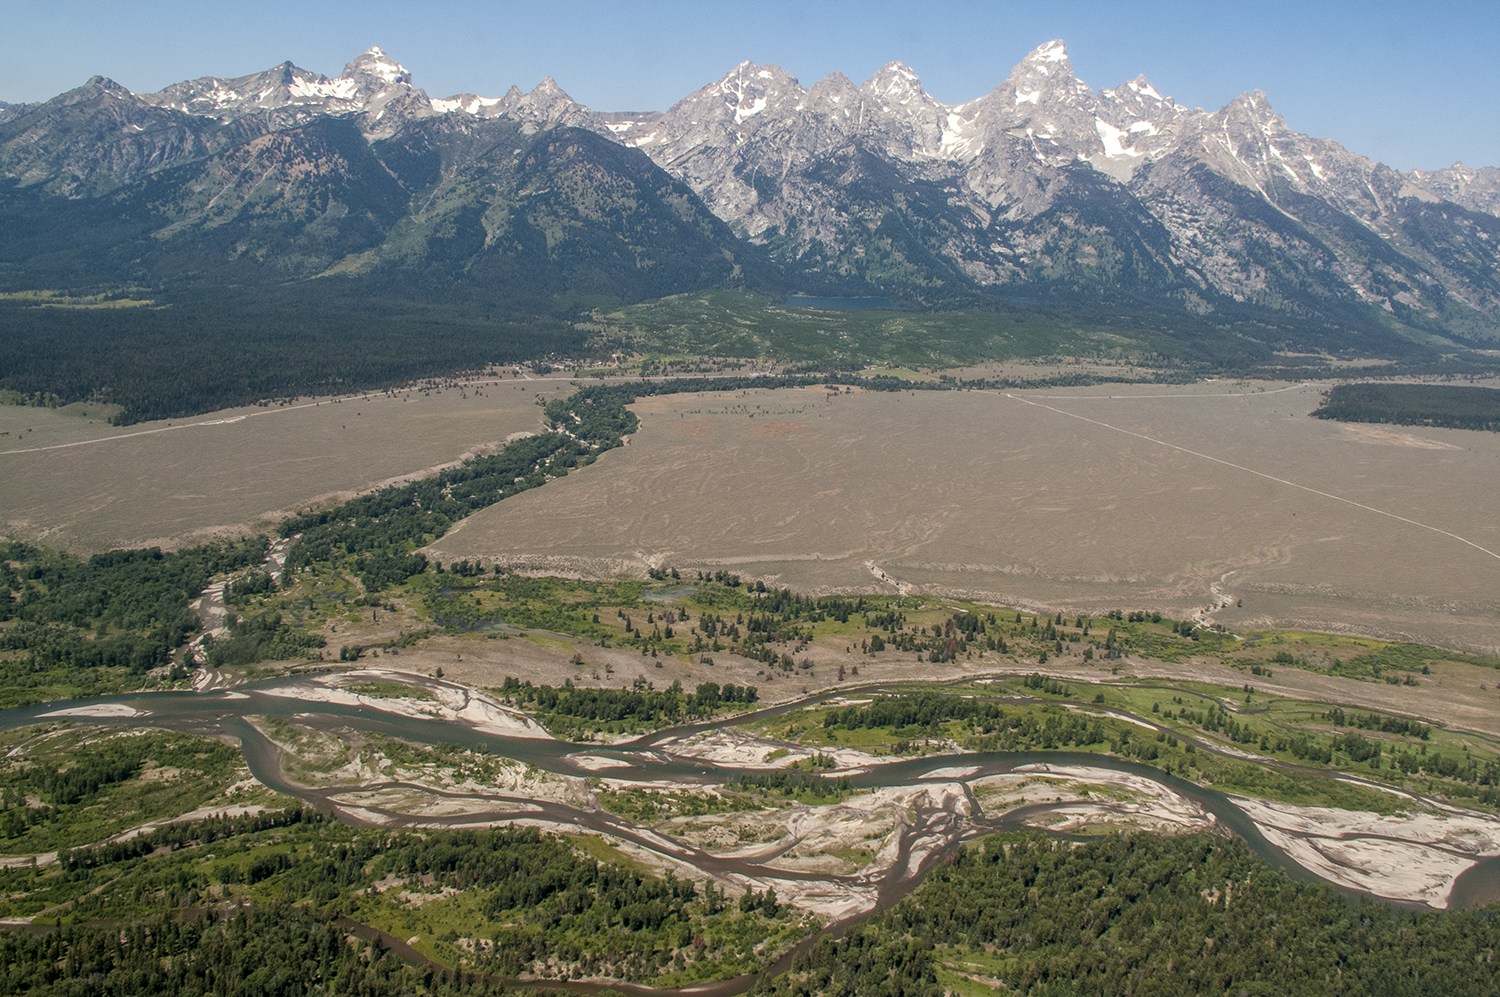 Flying over the Tetons